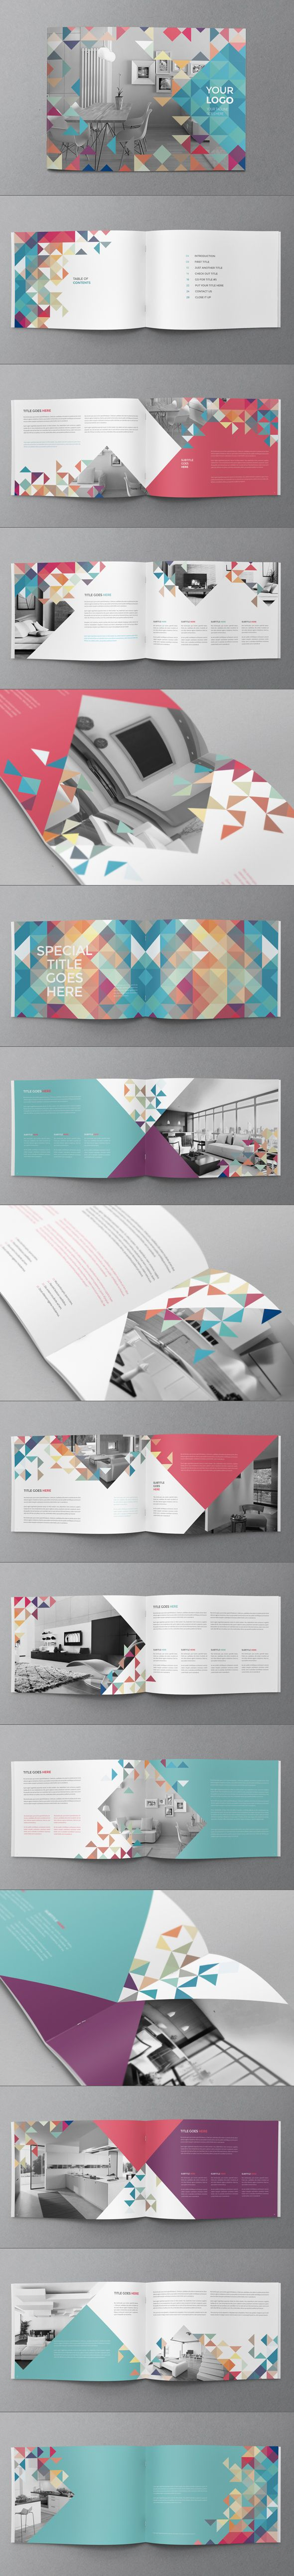 Minimal Colorful Brochure by Abra Design, via Behance